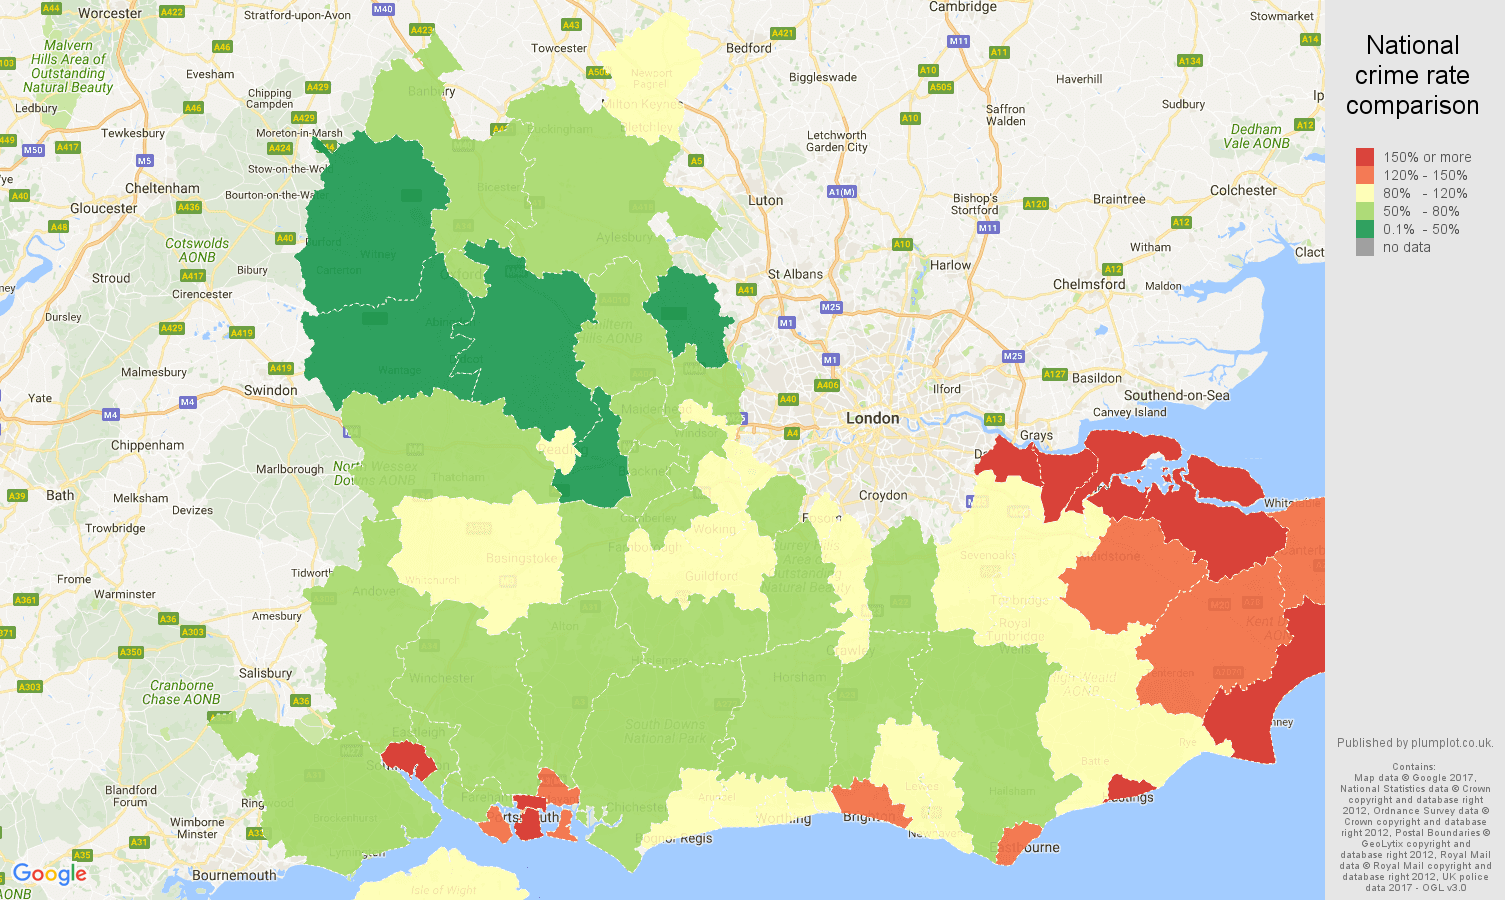 South Of England Map Uk.South East England Violent Crime Statistics In Maps And Graphs